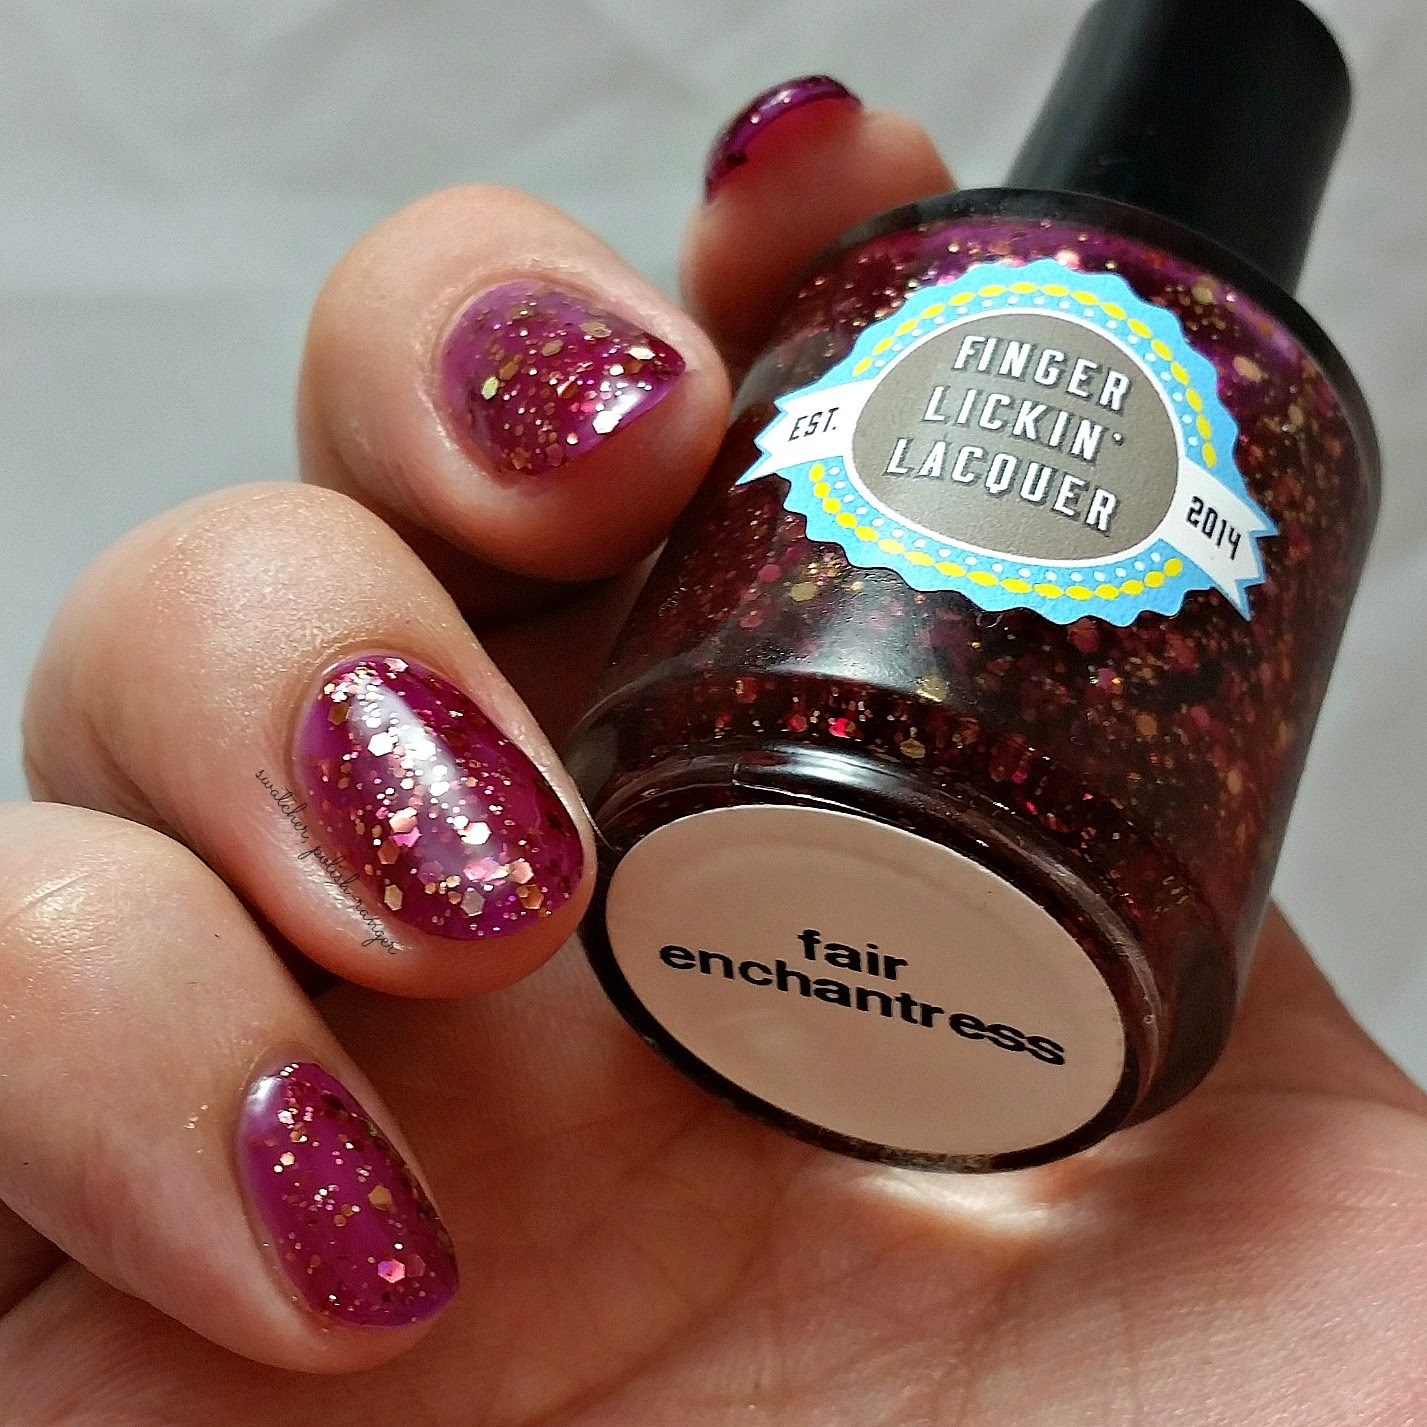 swatcher, polish-ranger | Finger Lickin Lacquer Fair Enchantress swatch